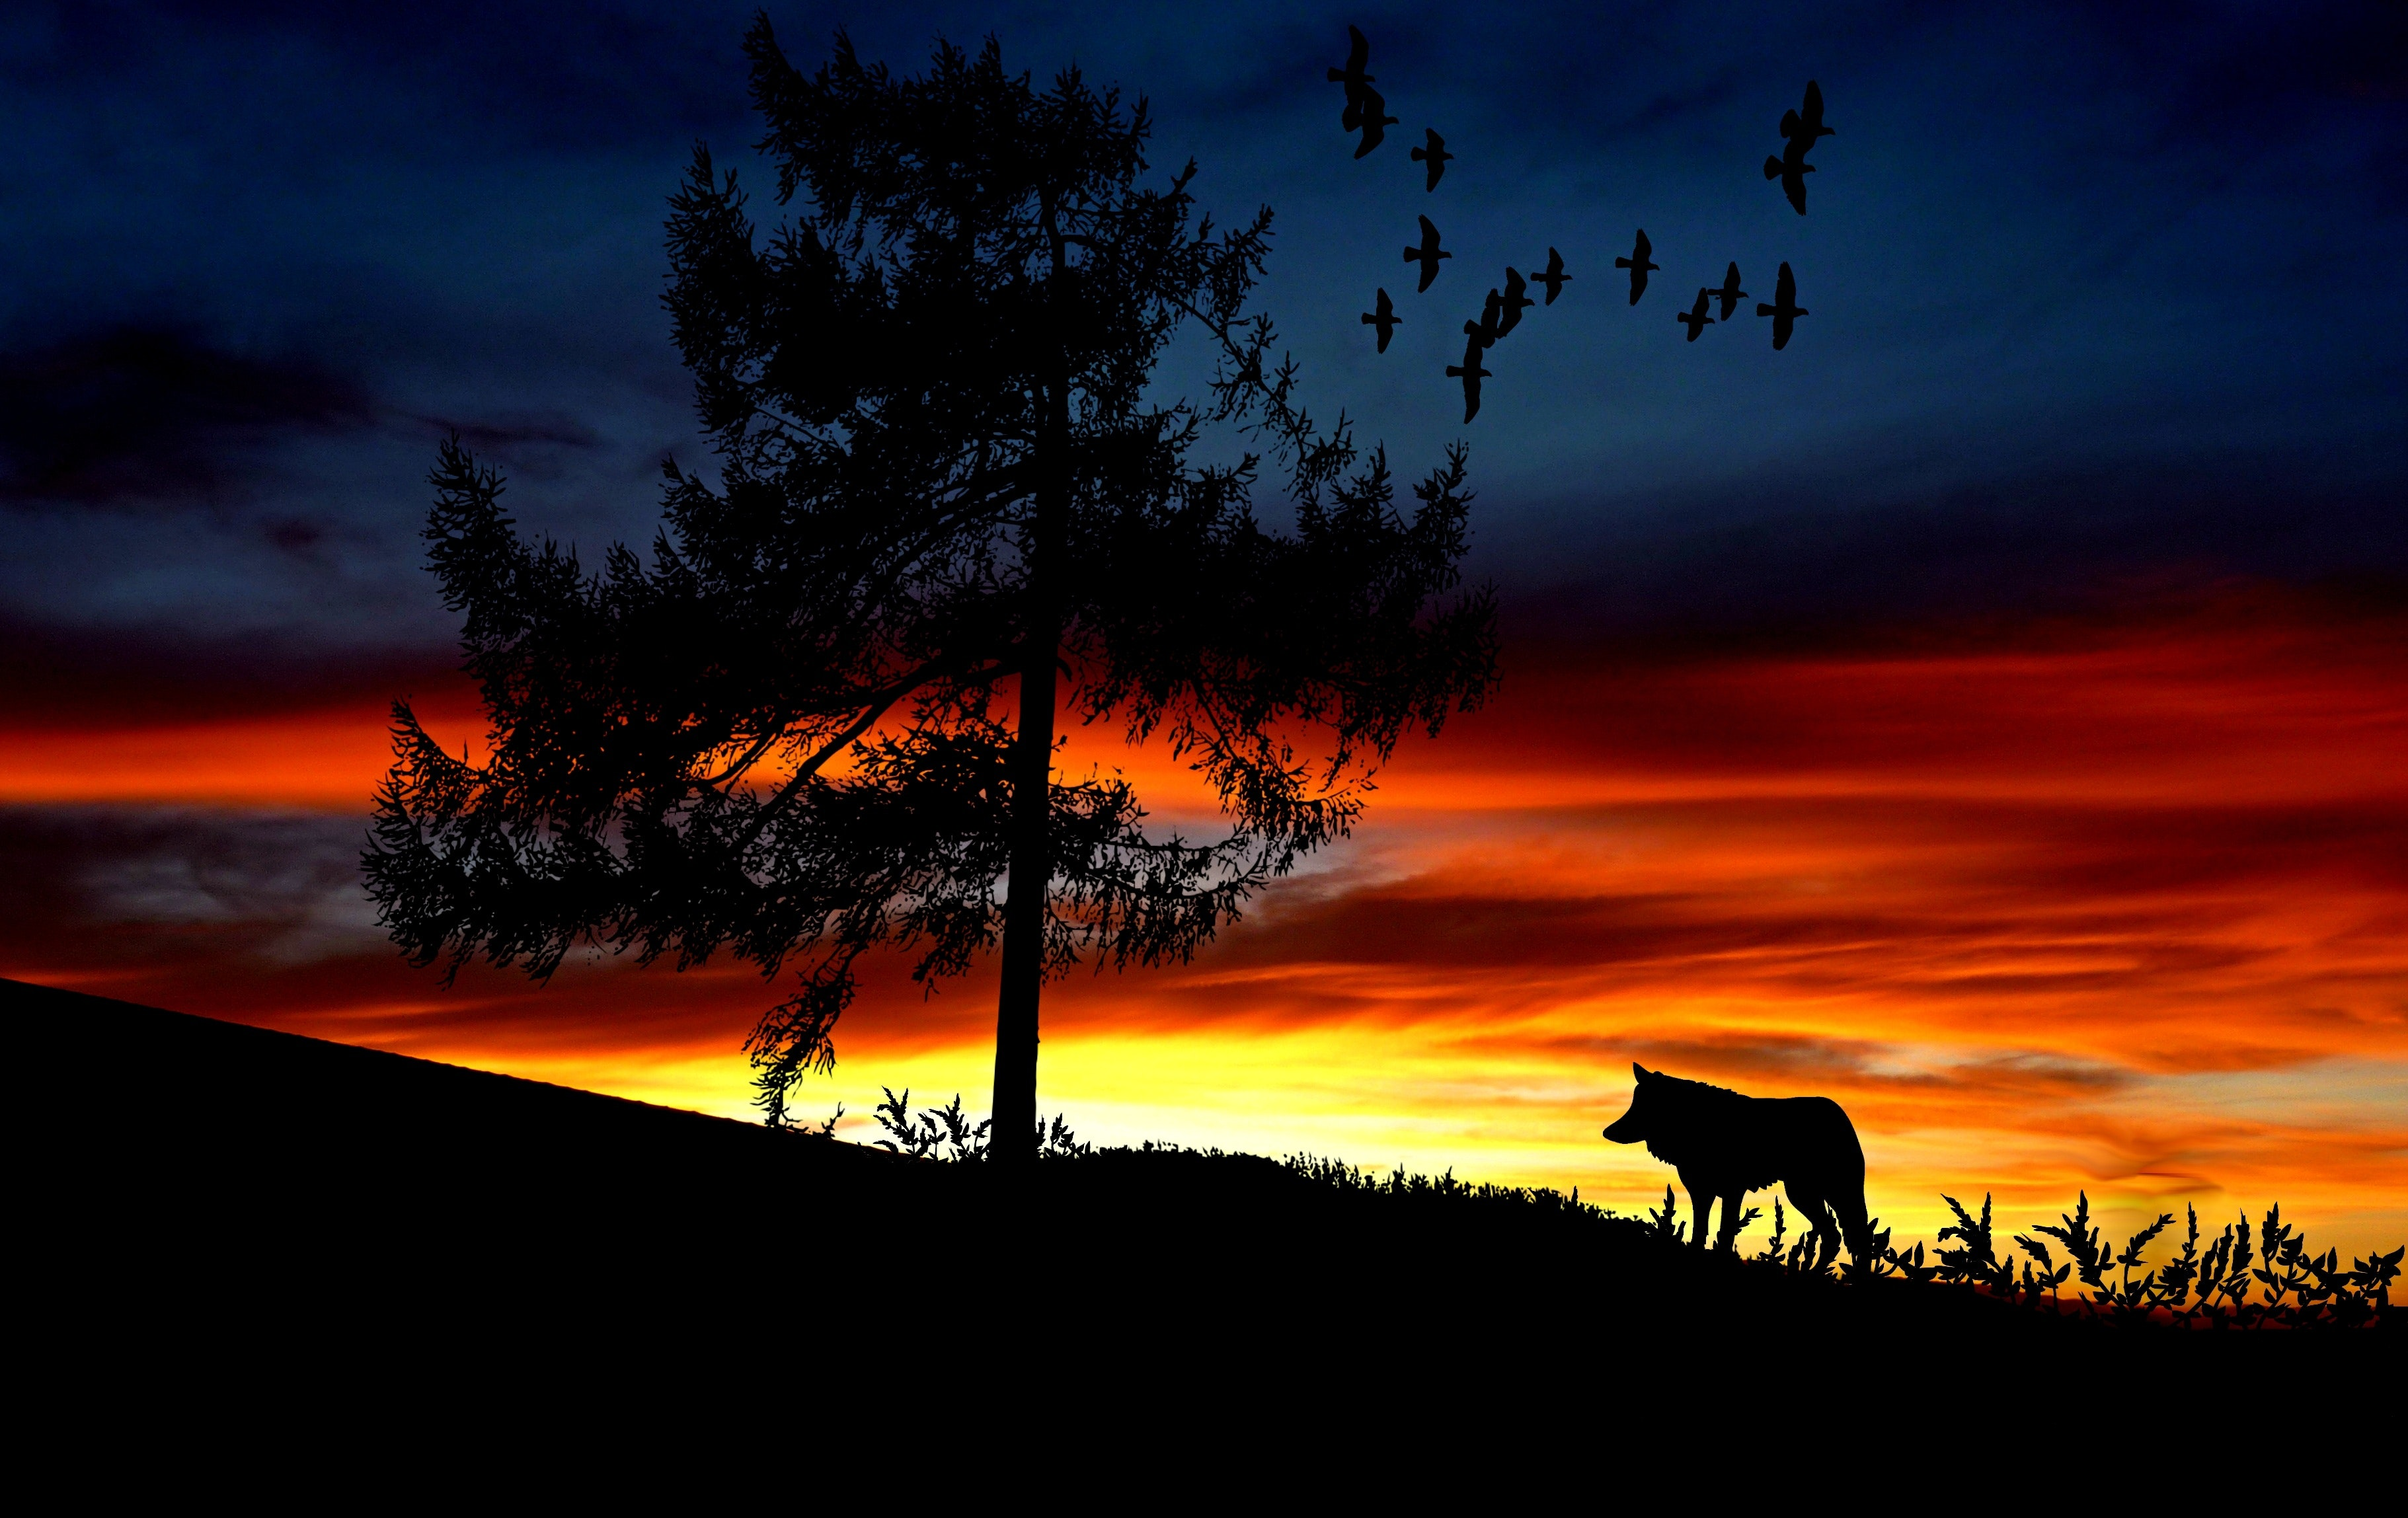 Silhouette dog on landscape against romantic sky at sunset photo